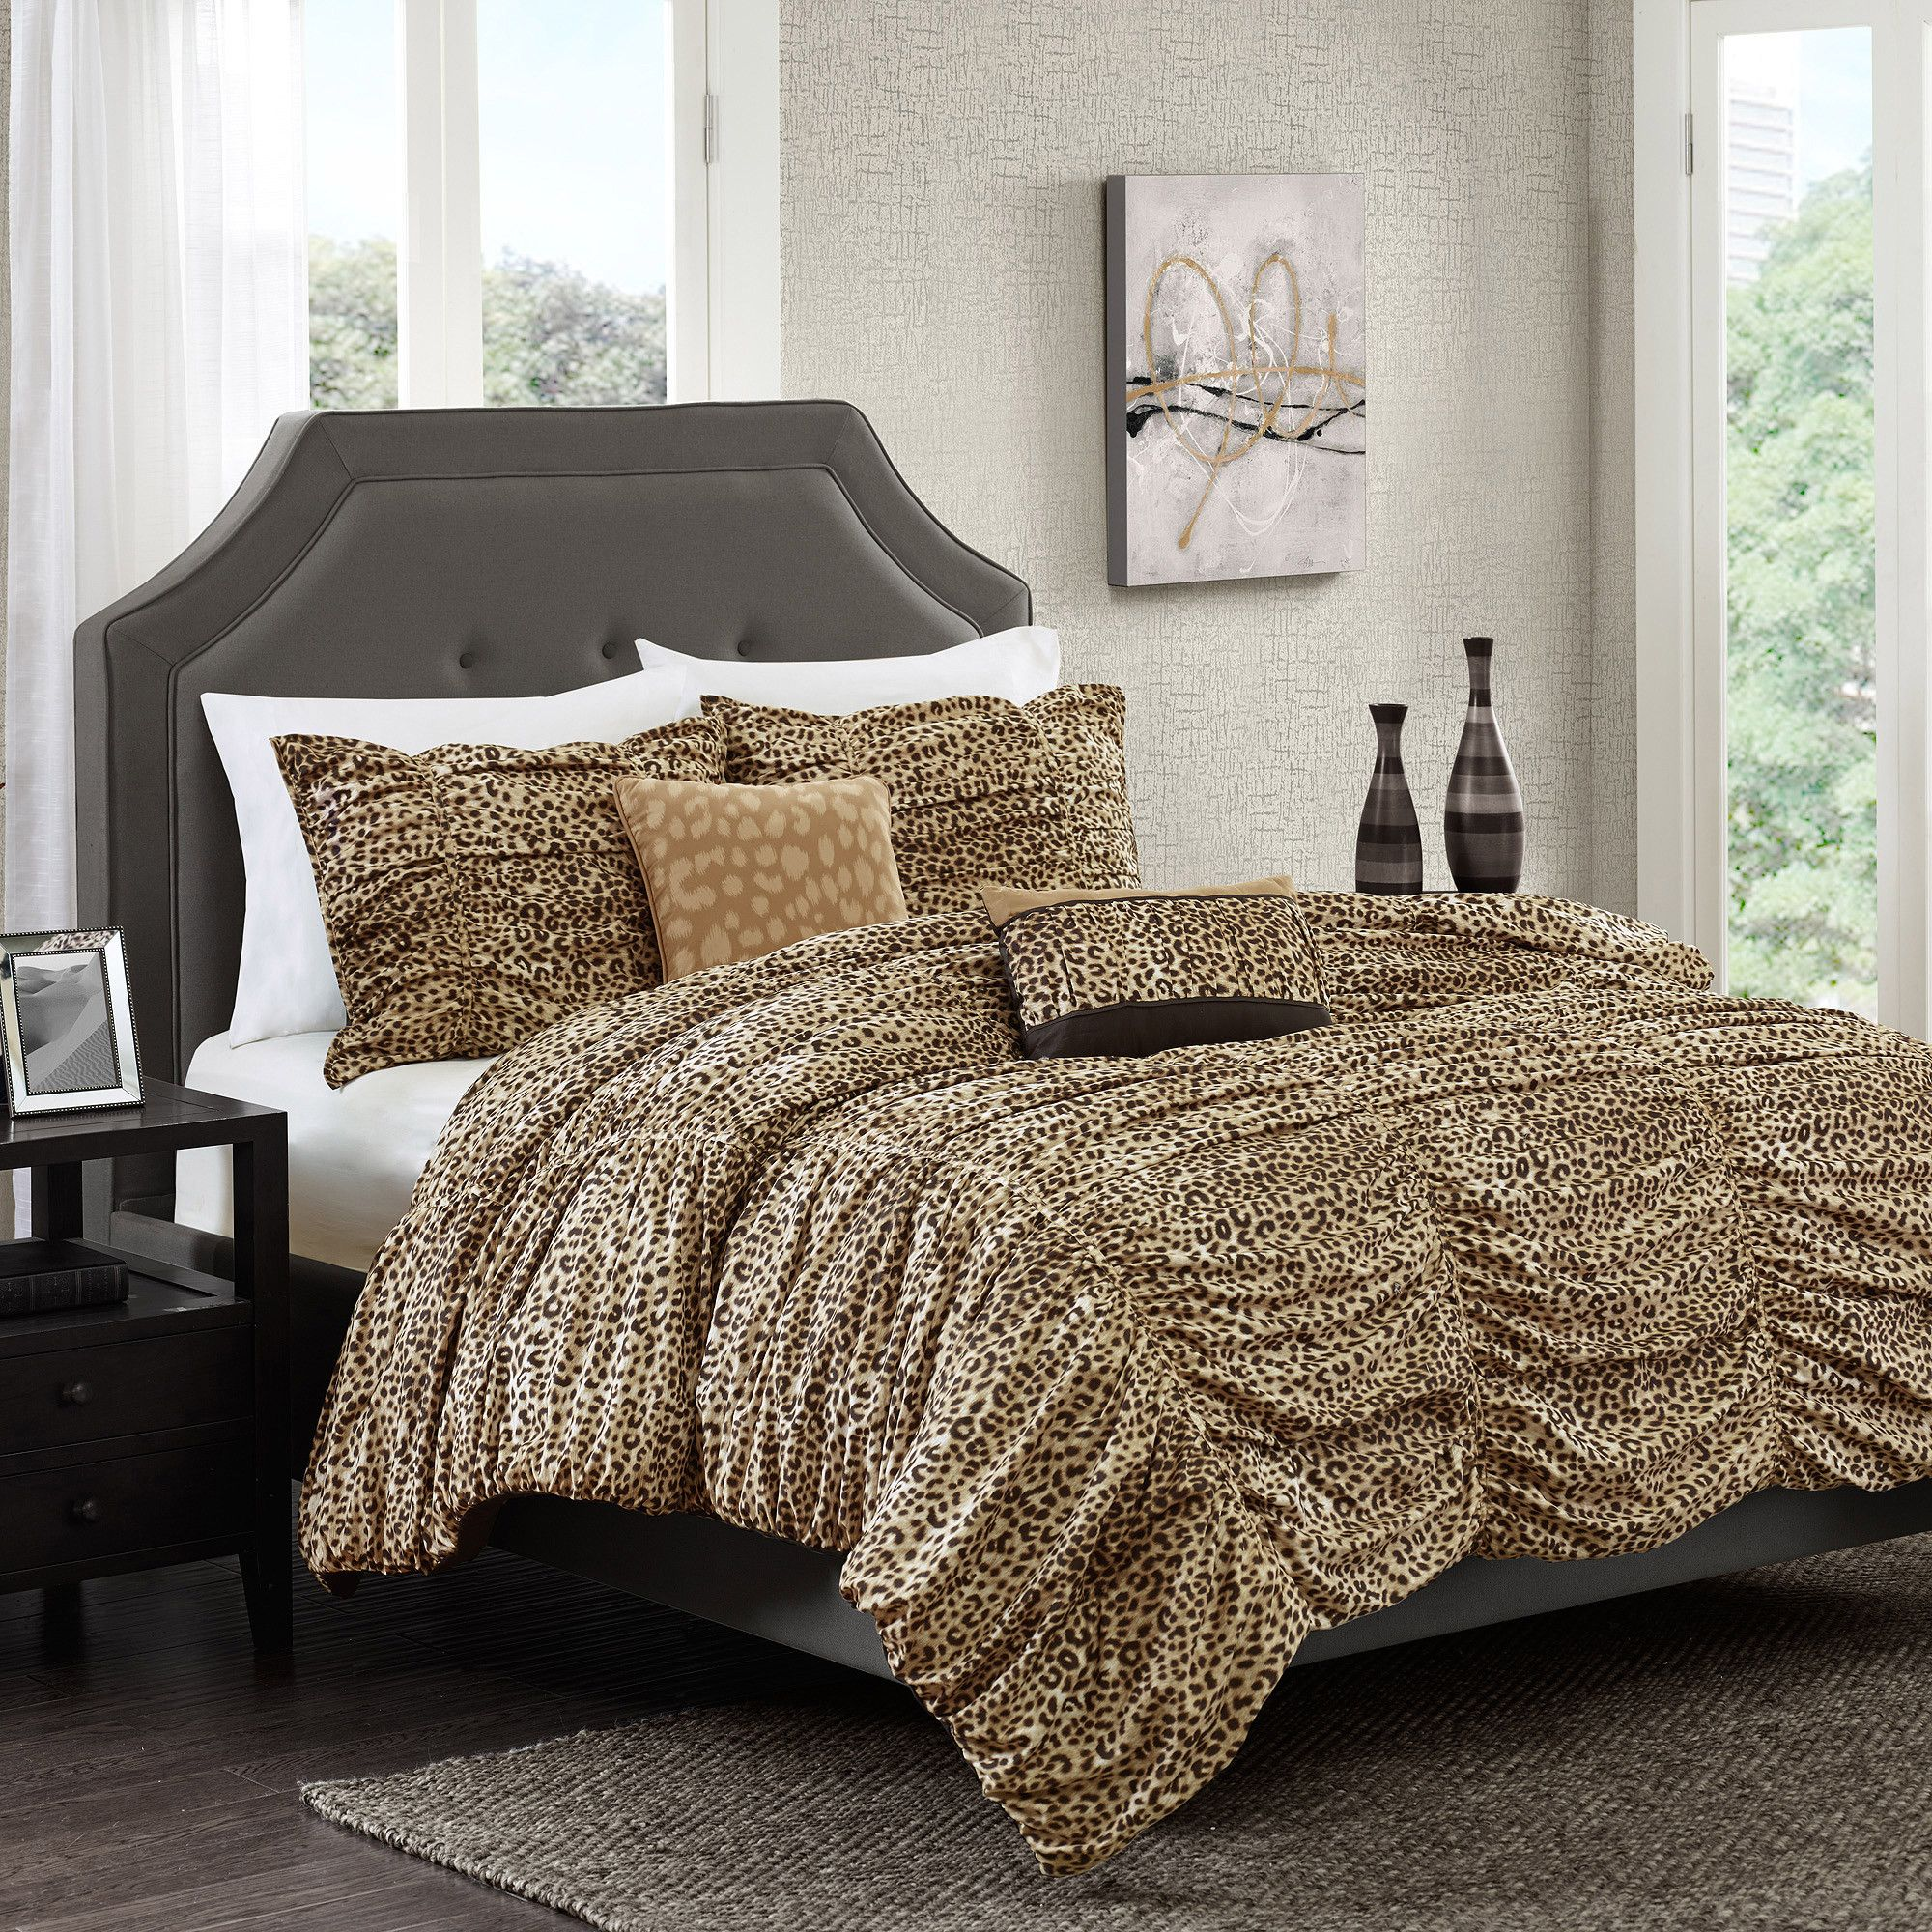 30 Fresh Daybed Comforter Sets Walmart To Inspire You Comforter